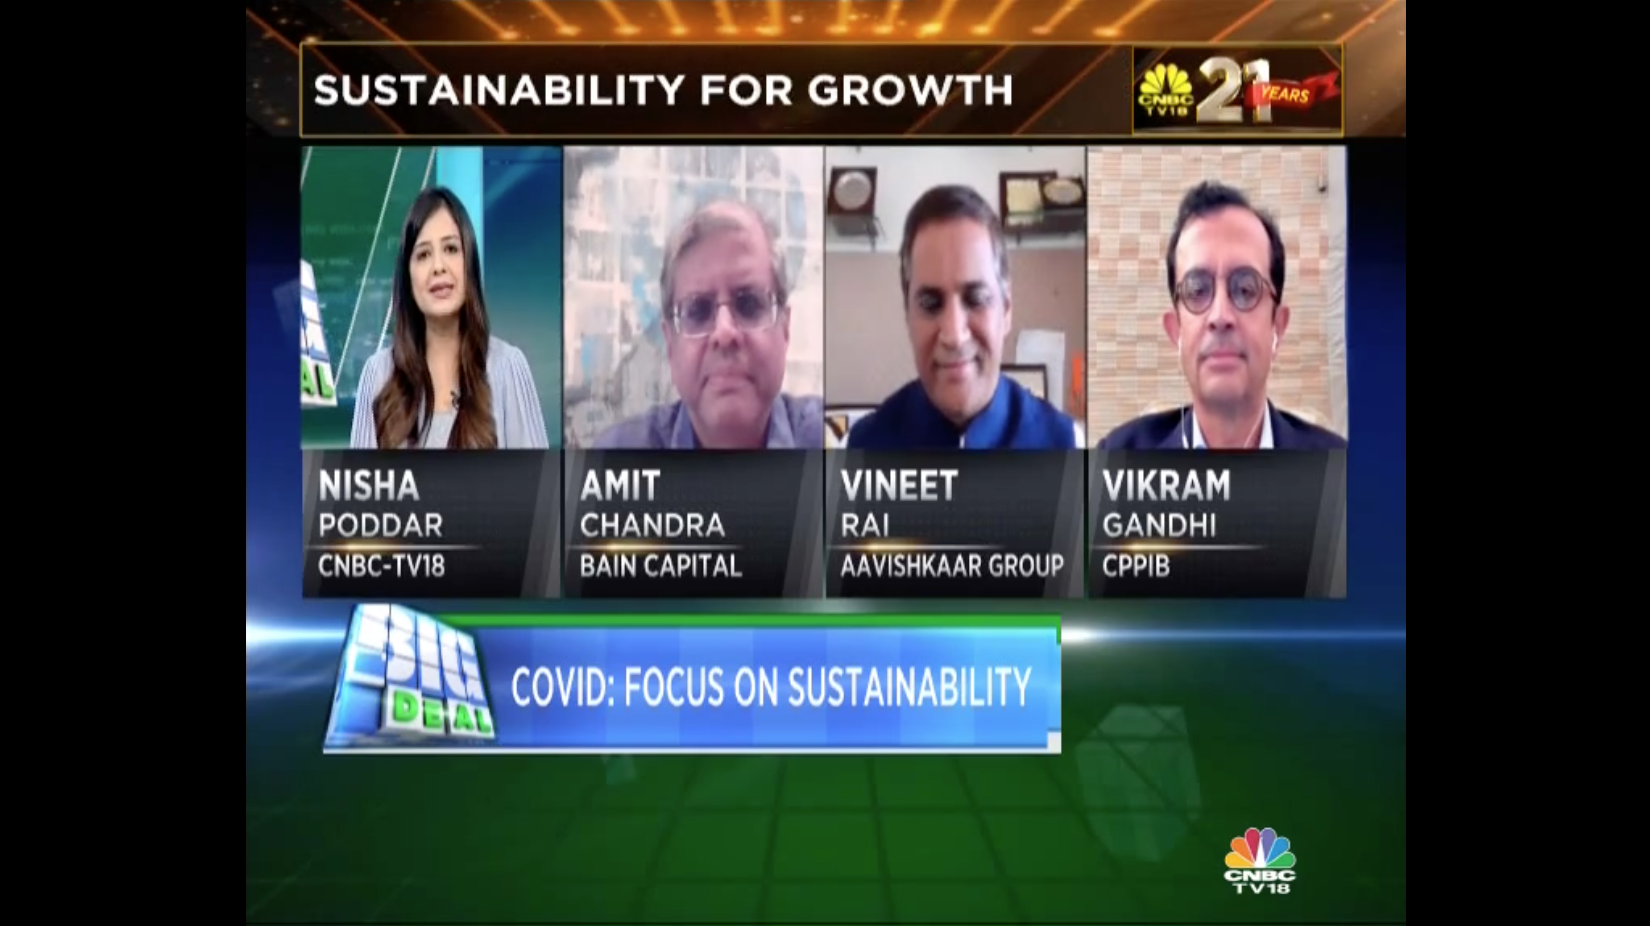 CNBC TV18 Episode of Big Deal with Vineet Rai - Featured